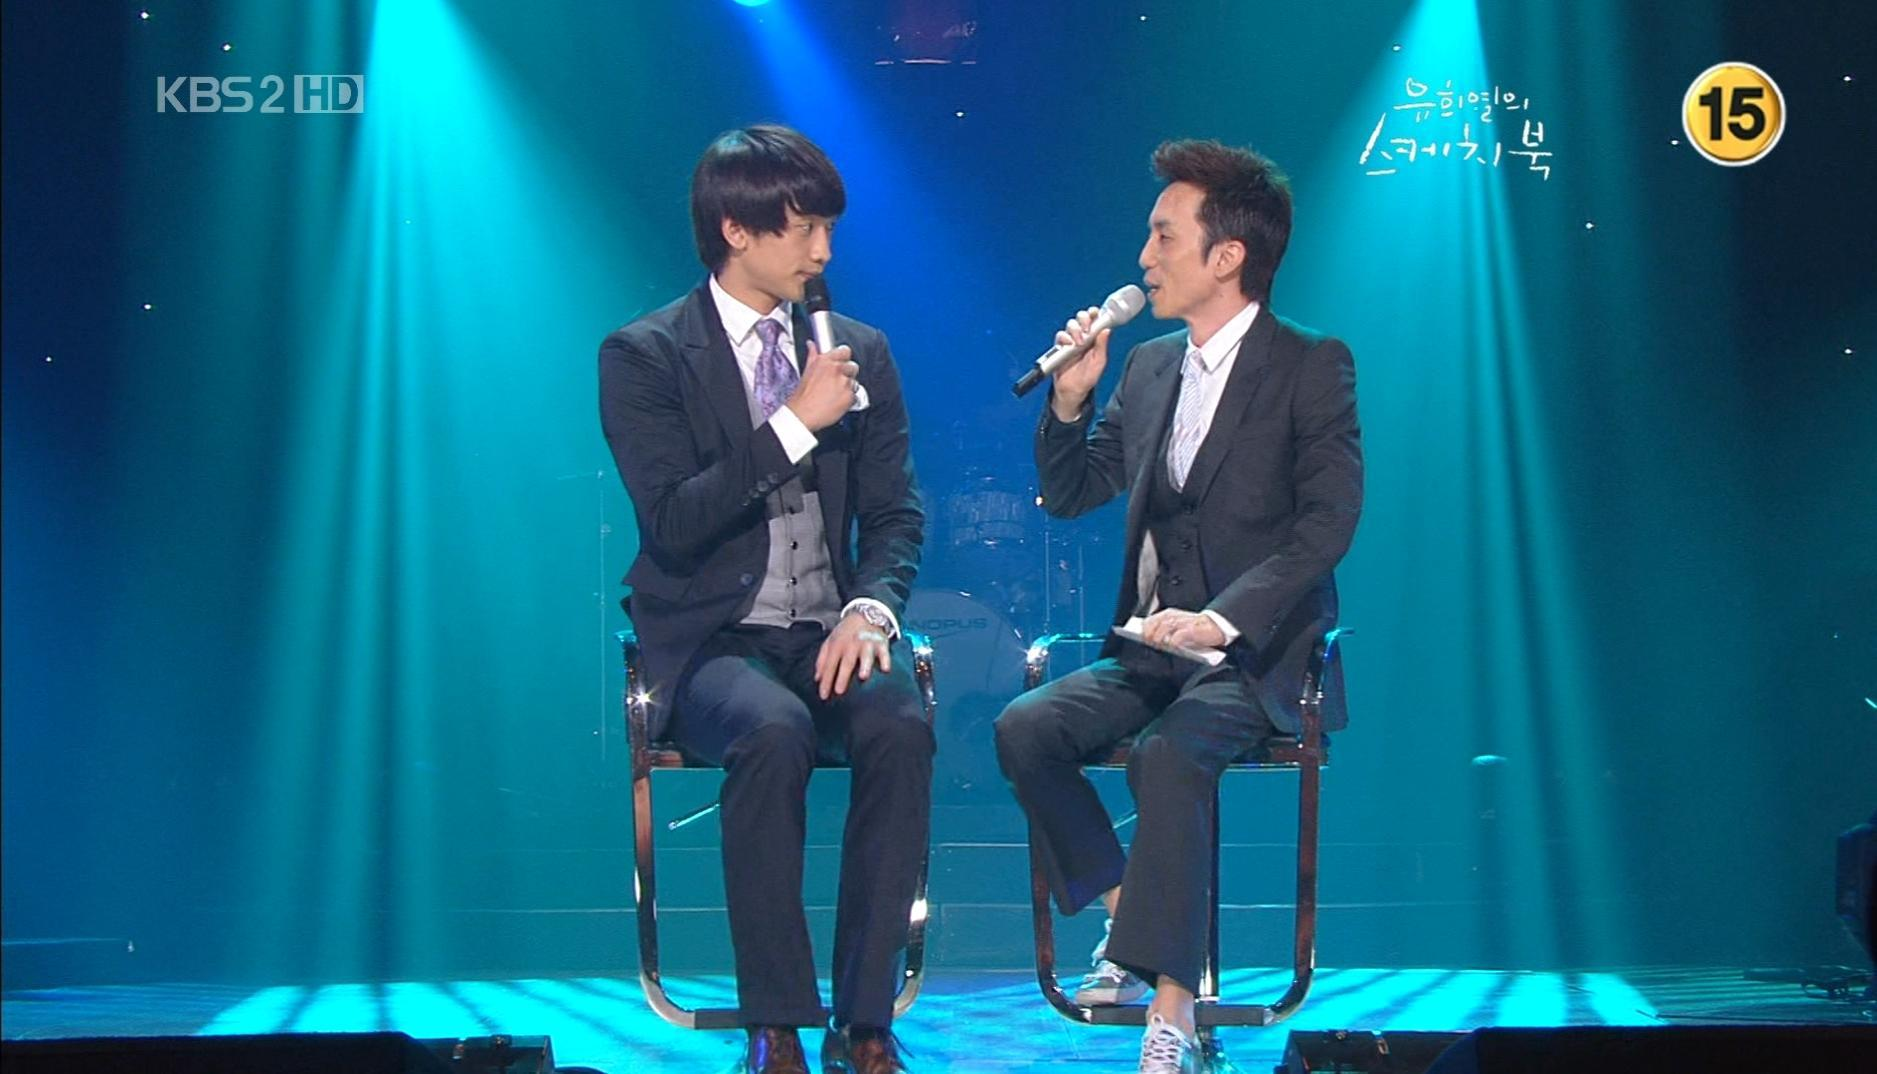 100521-Yoo Hee Yeol's Sketchbook-02-01